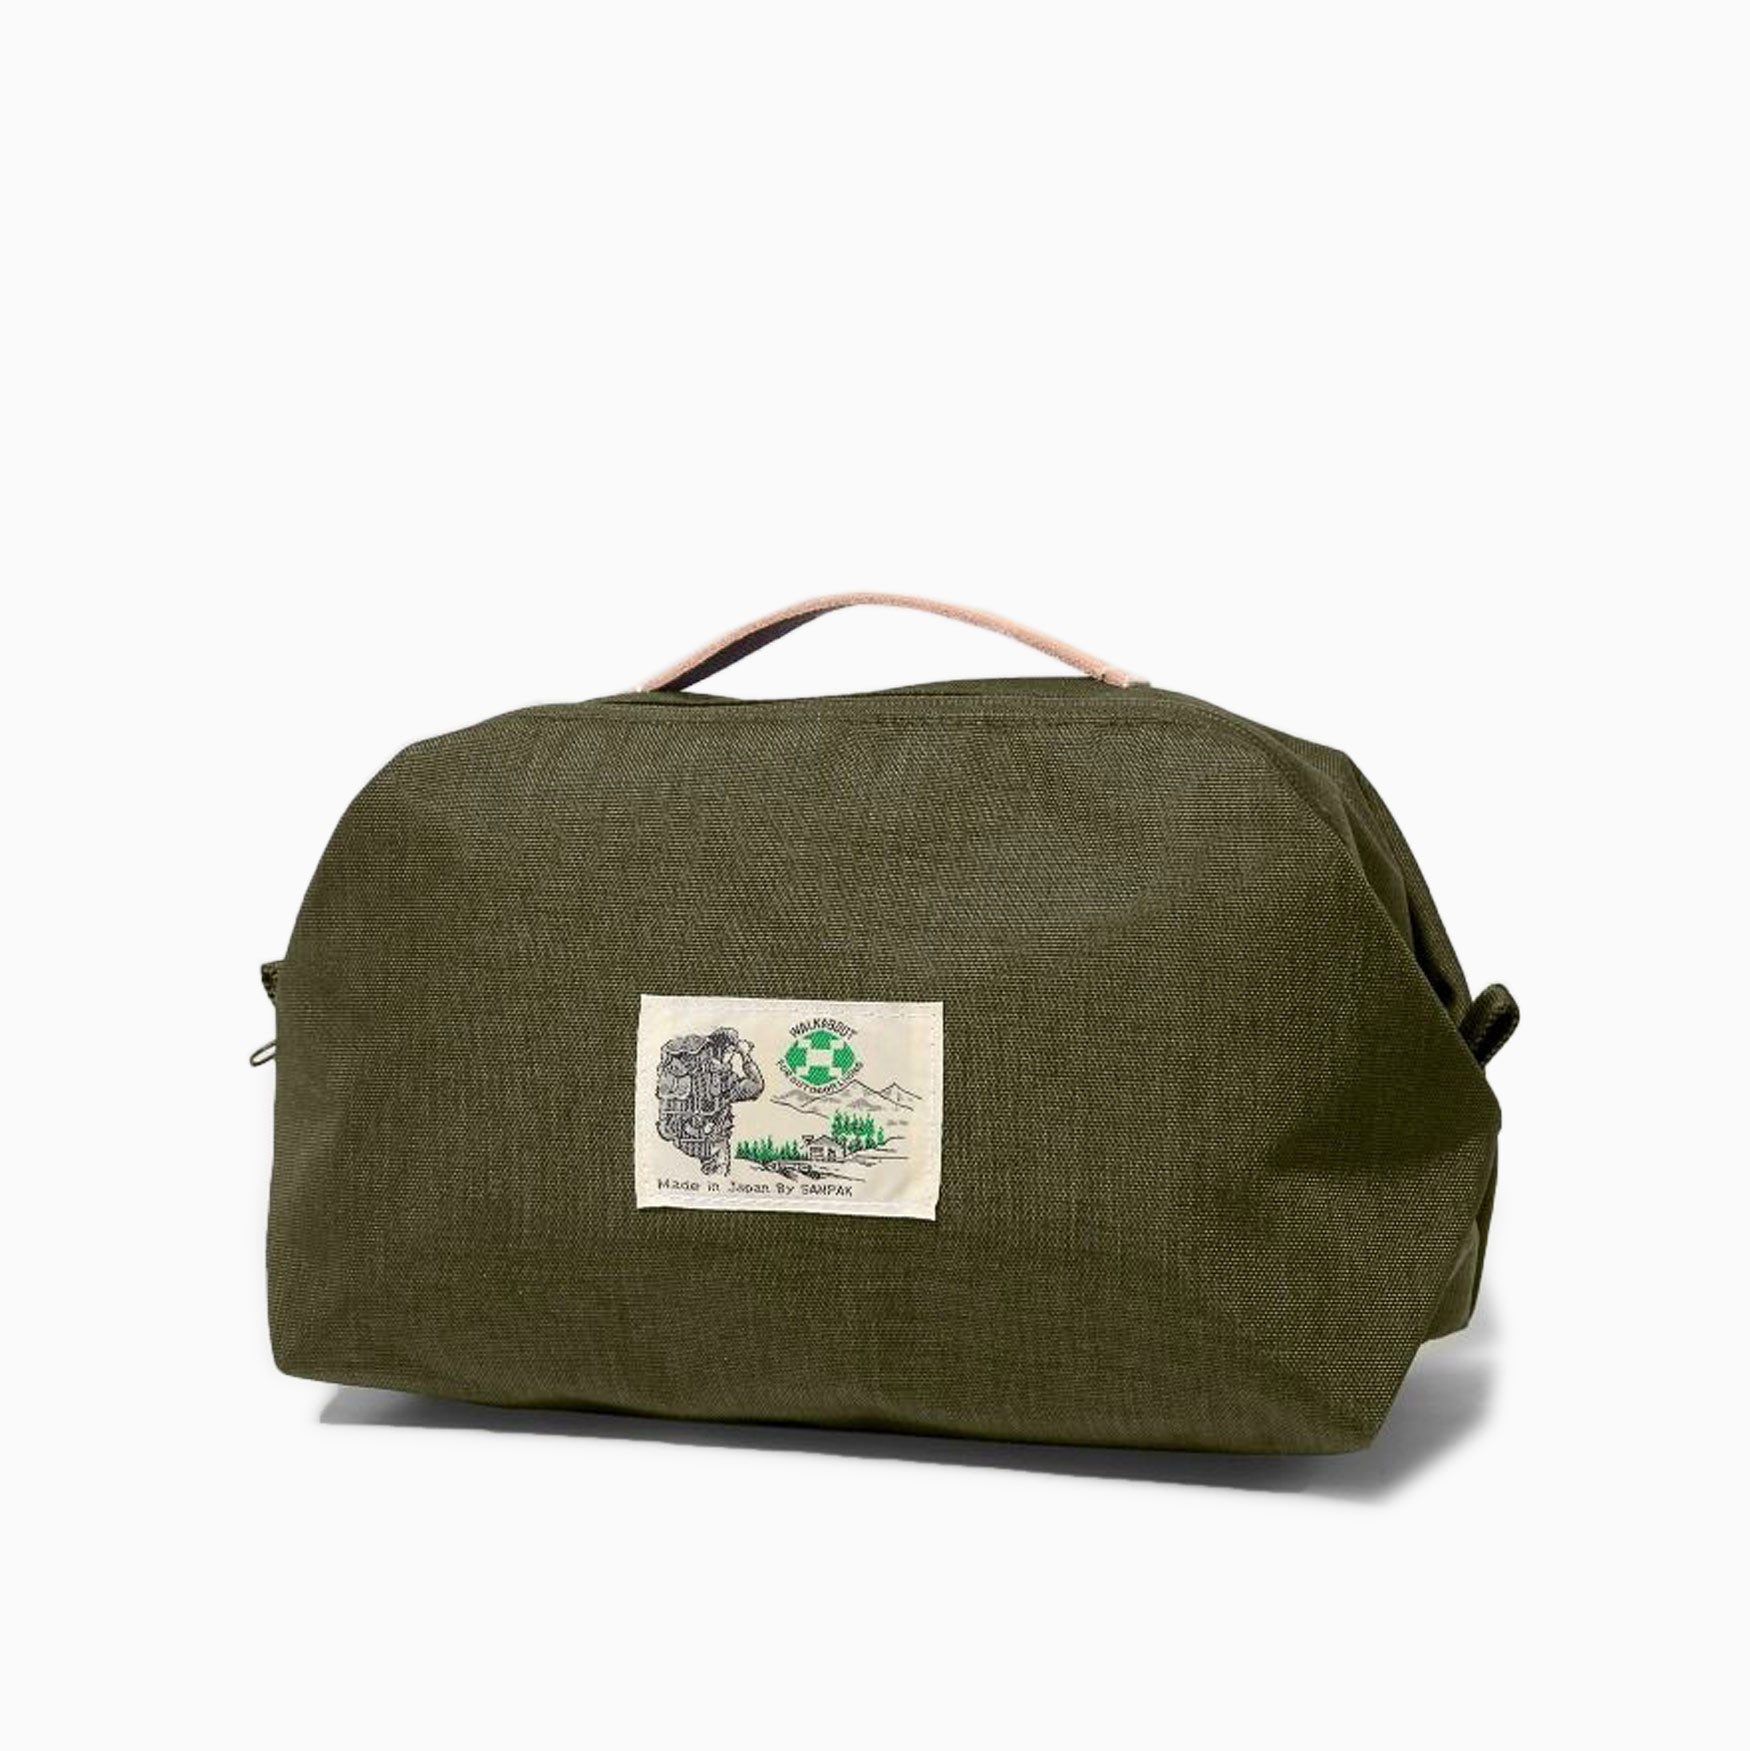 Garbstore x Sanpack Walkabout Washbag - Olive